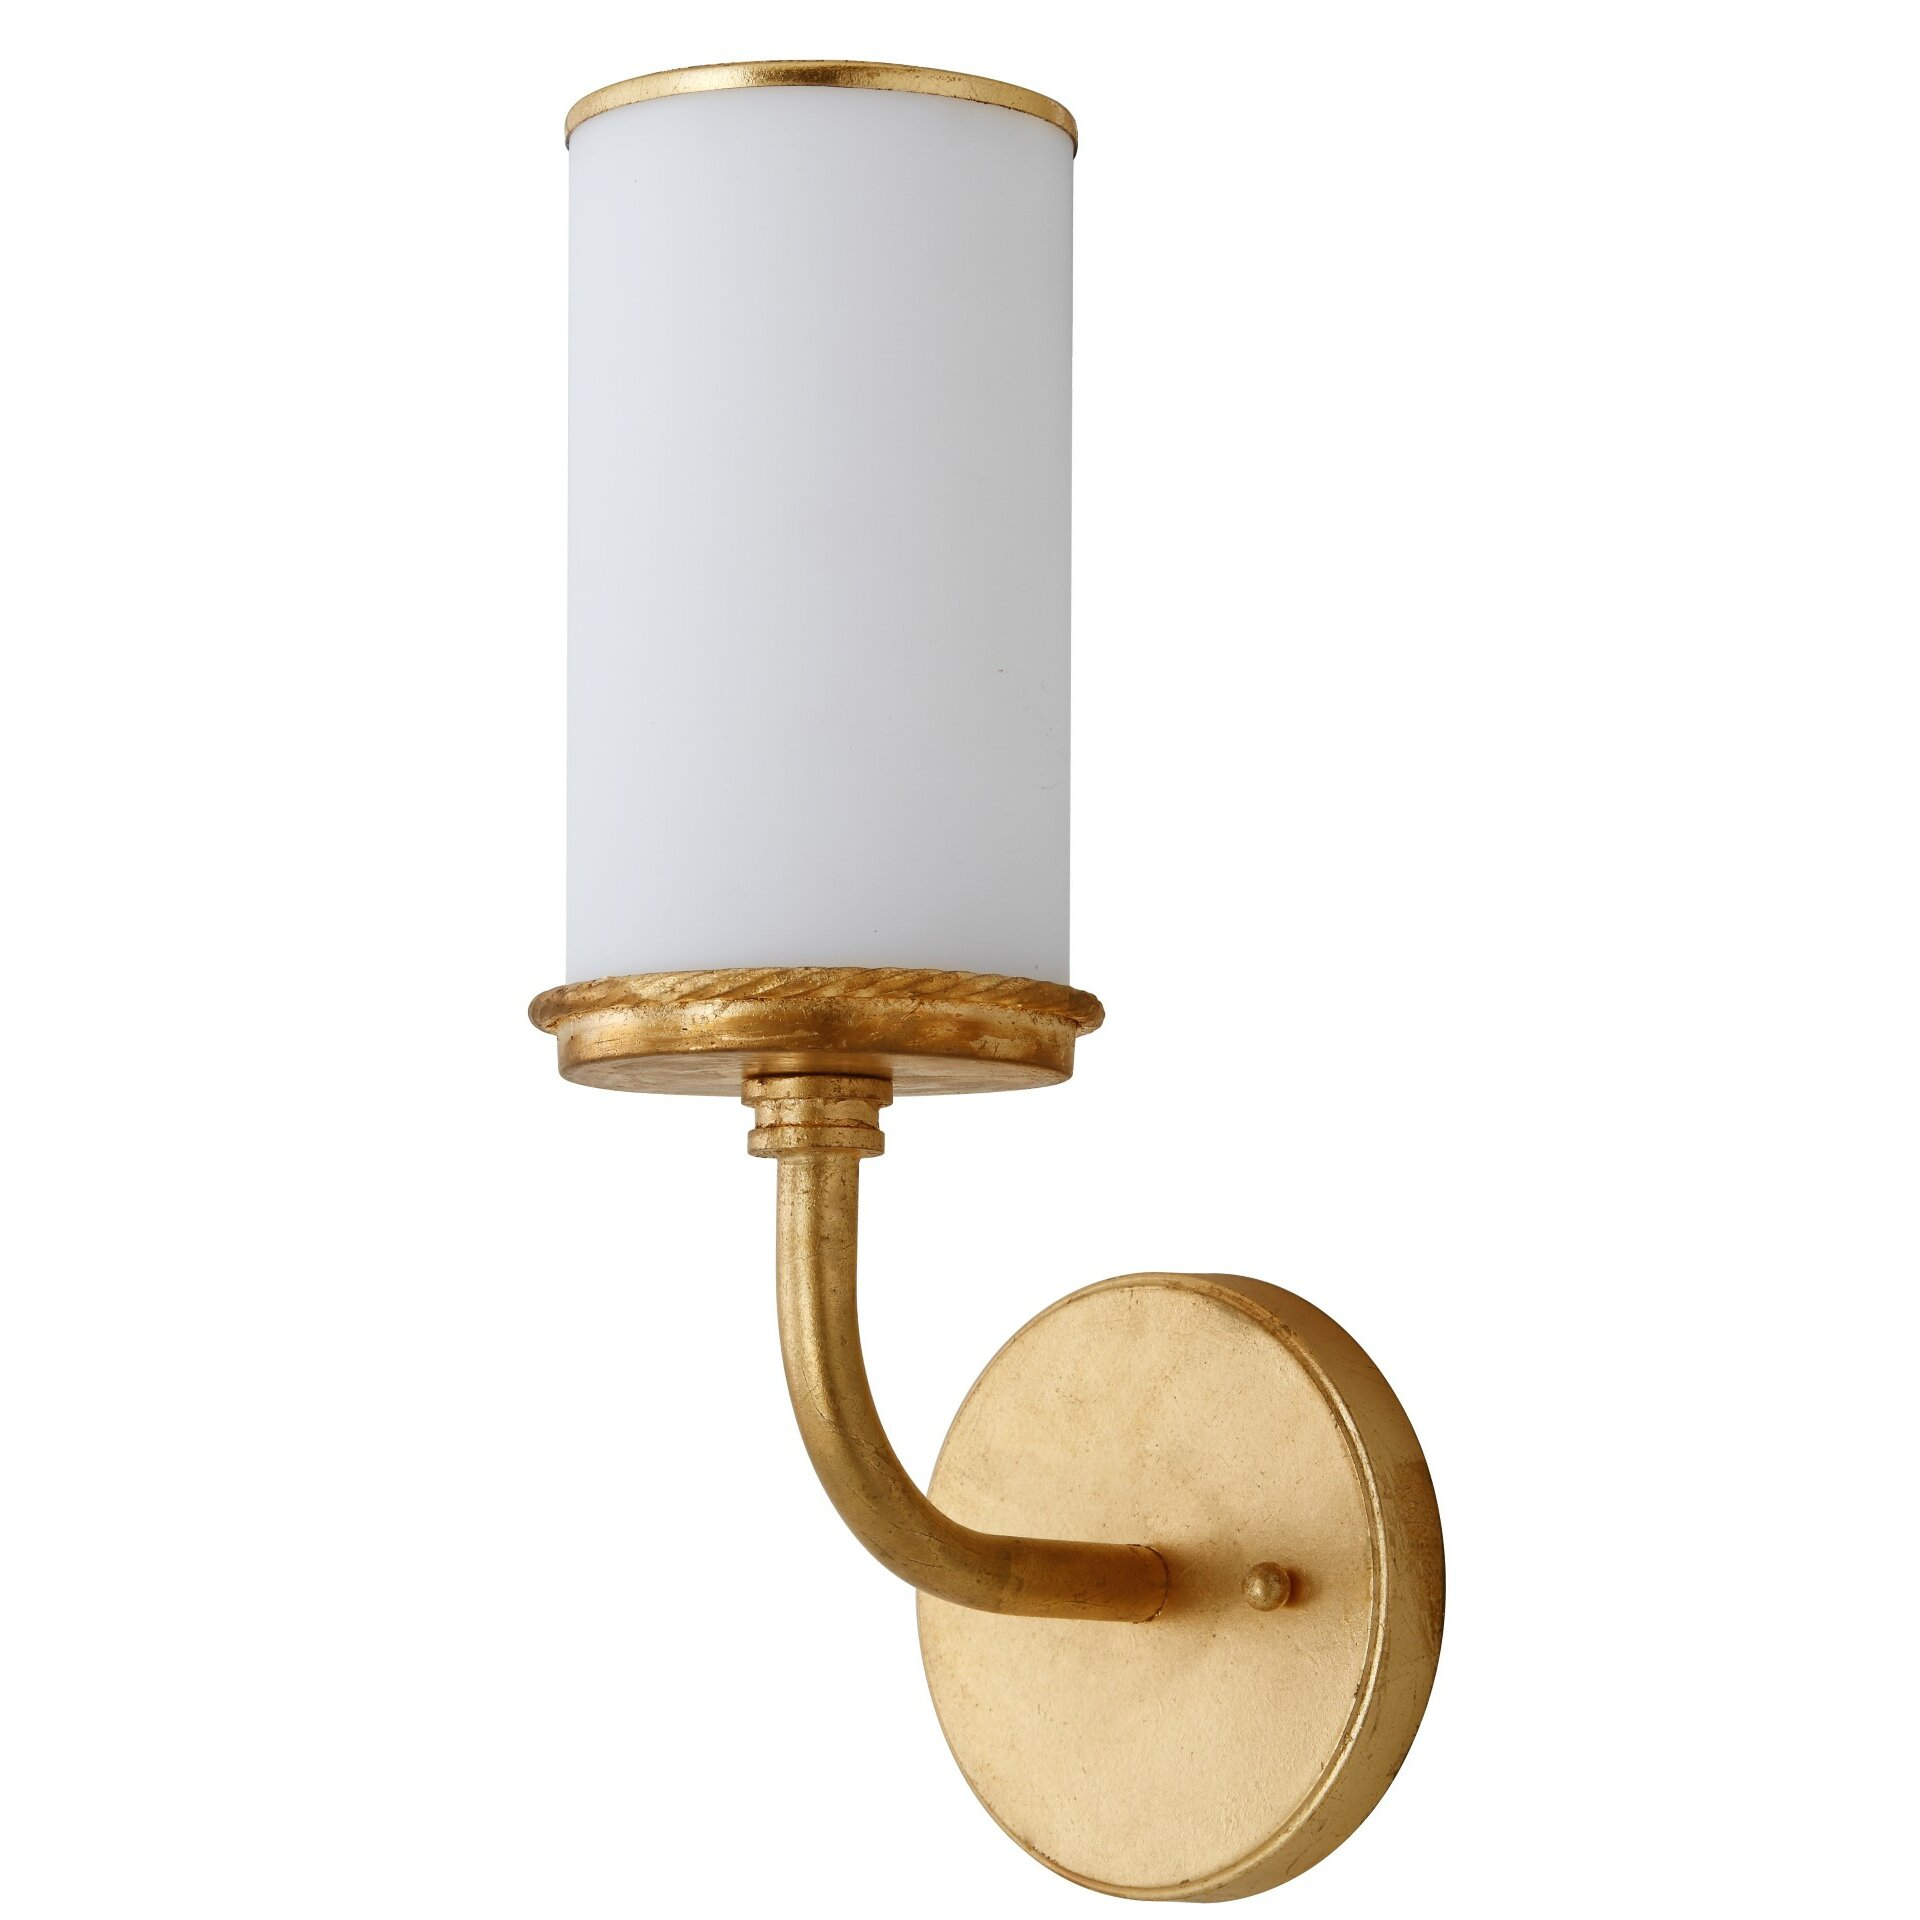 Wall Sconce With Magnifying Glass : Darby Home Co Bainbridge Island Wall Sconce Wayfair.ca